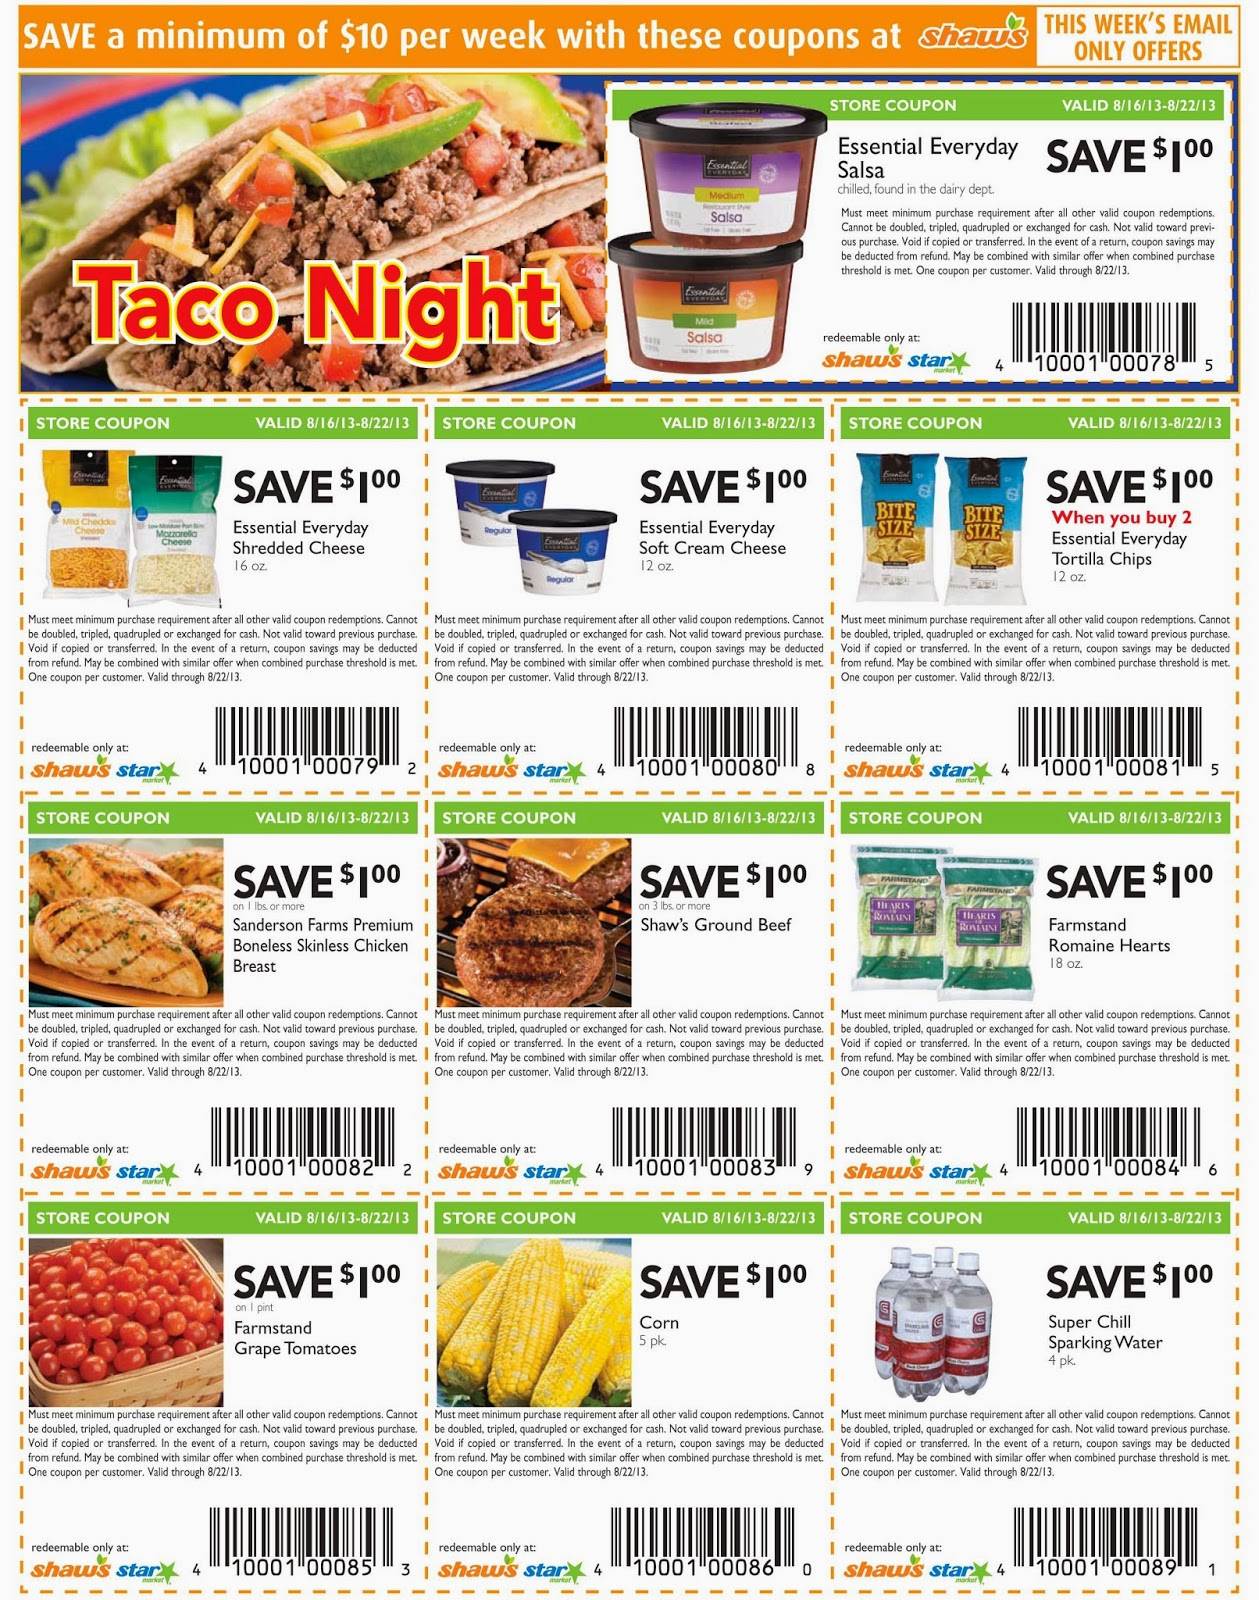 Save big with the latest Food & Grocery deals, coupons and promo codes which are added daily by our team.